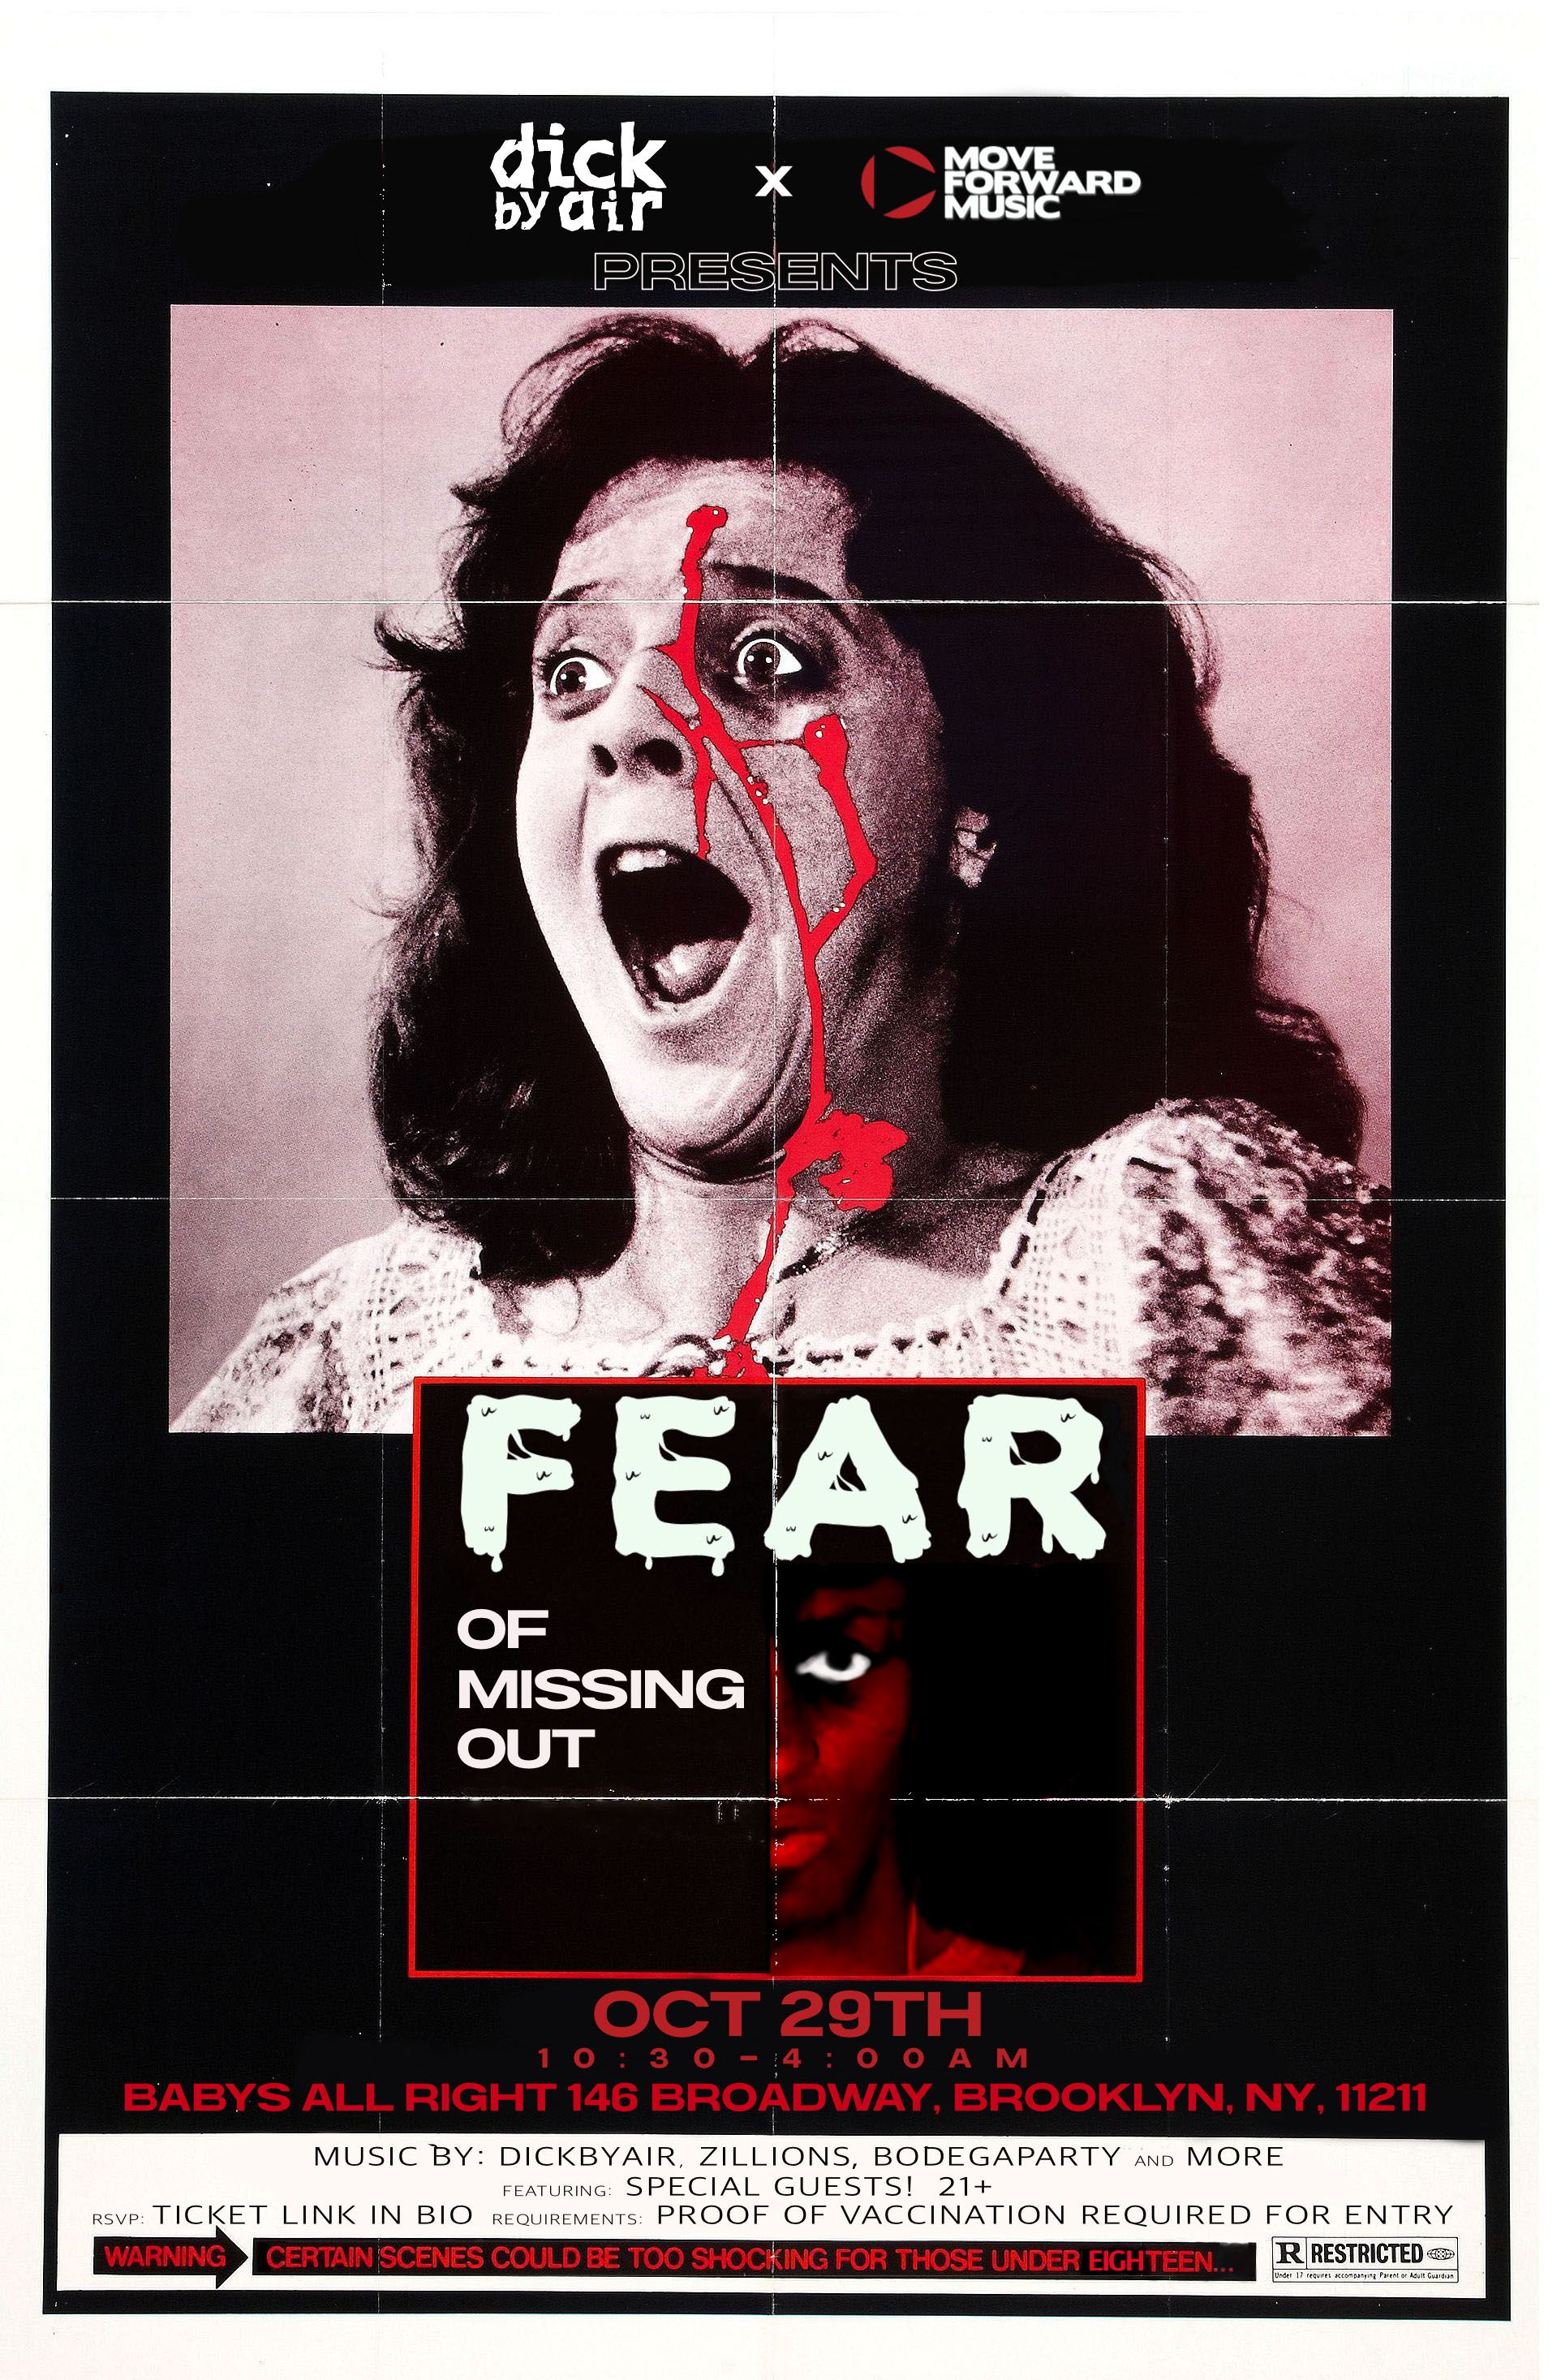 FEAR (of missing out):